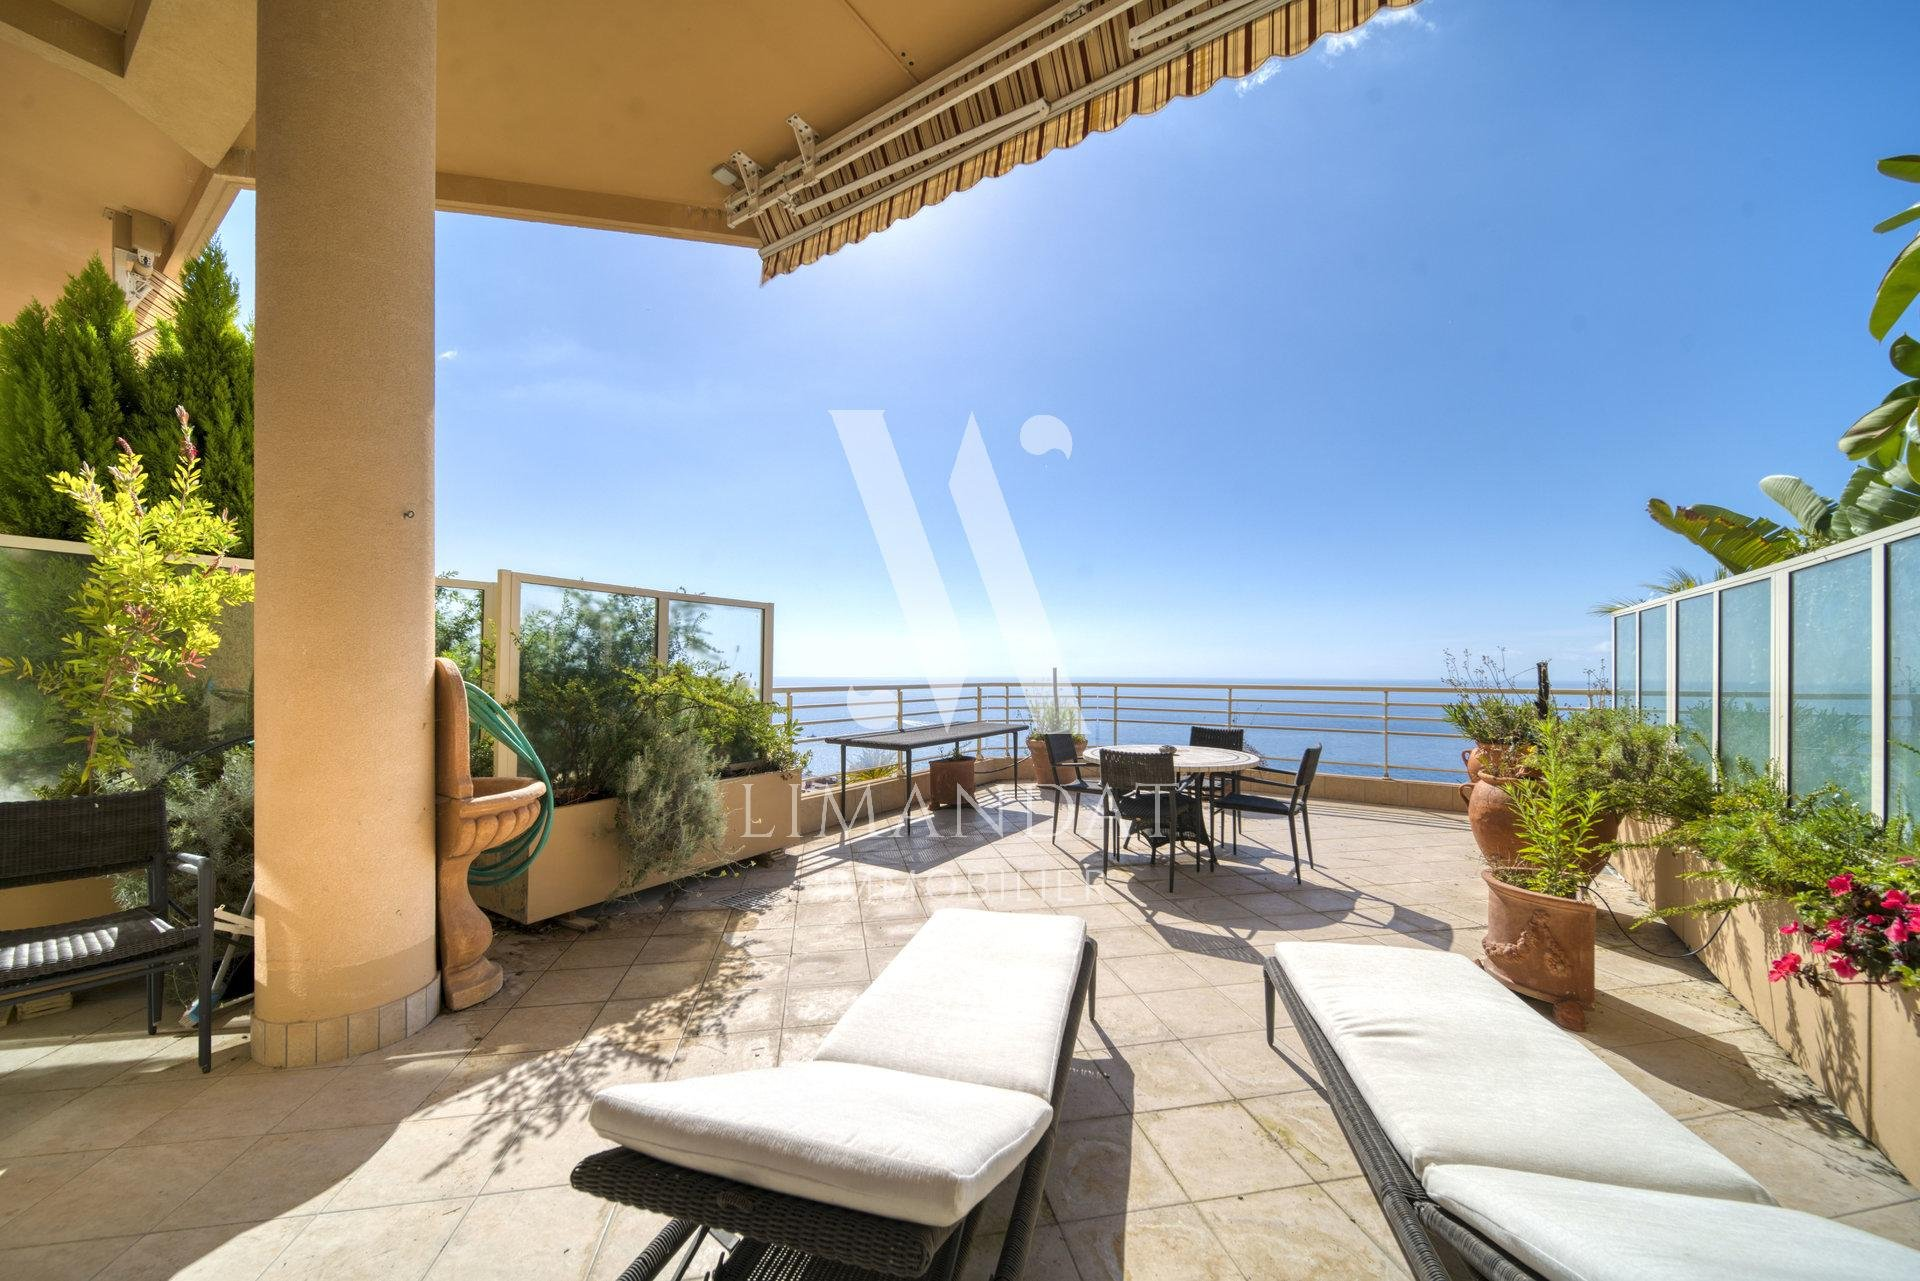 Magnificent 2 bedroom duplex apartment with sea view 145m2, 58m2 terrace